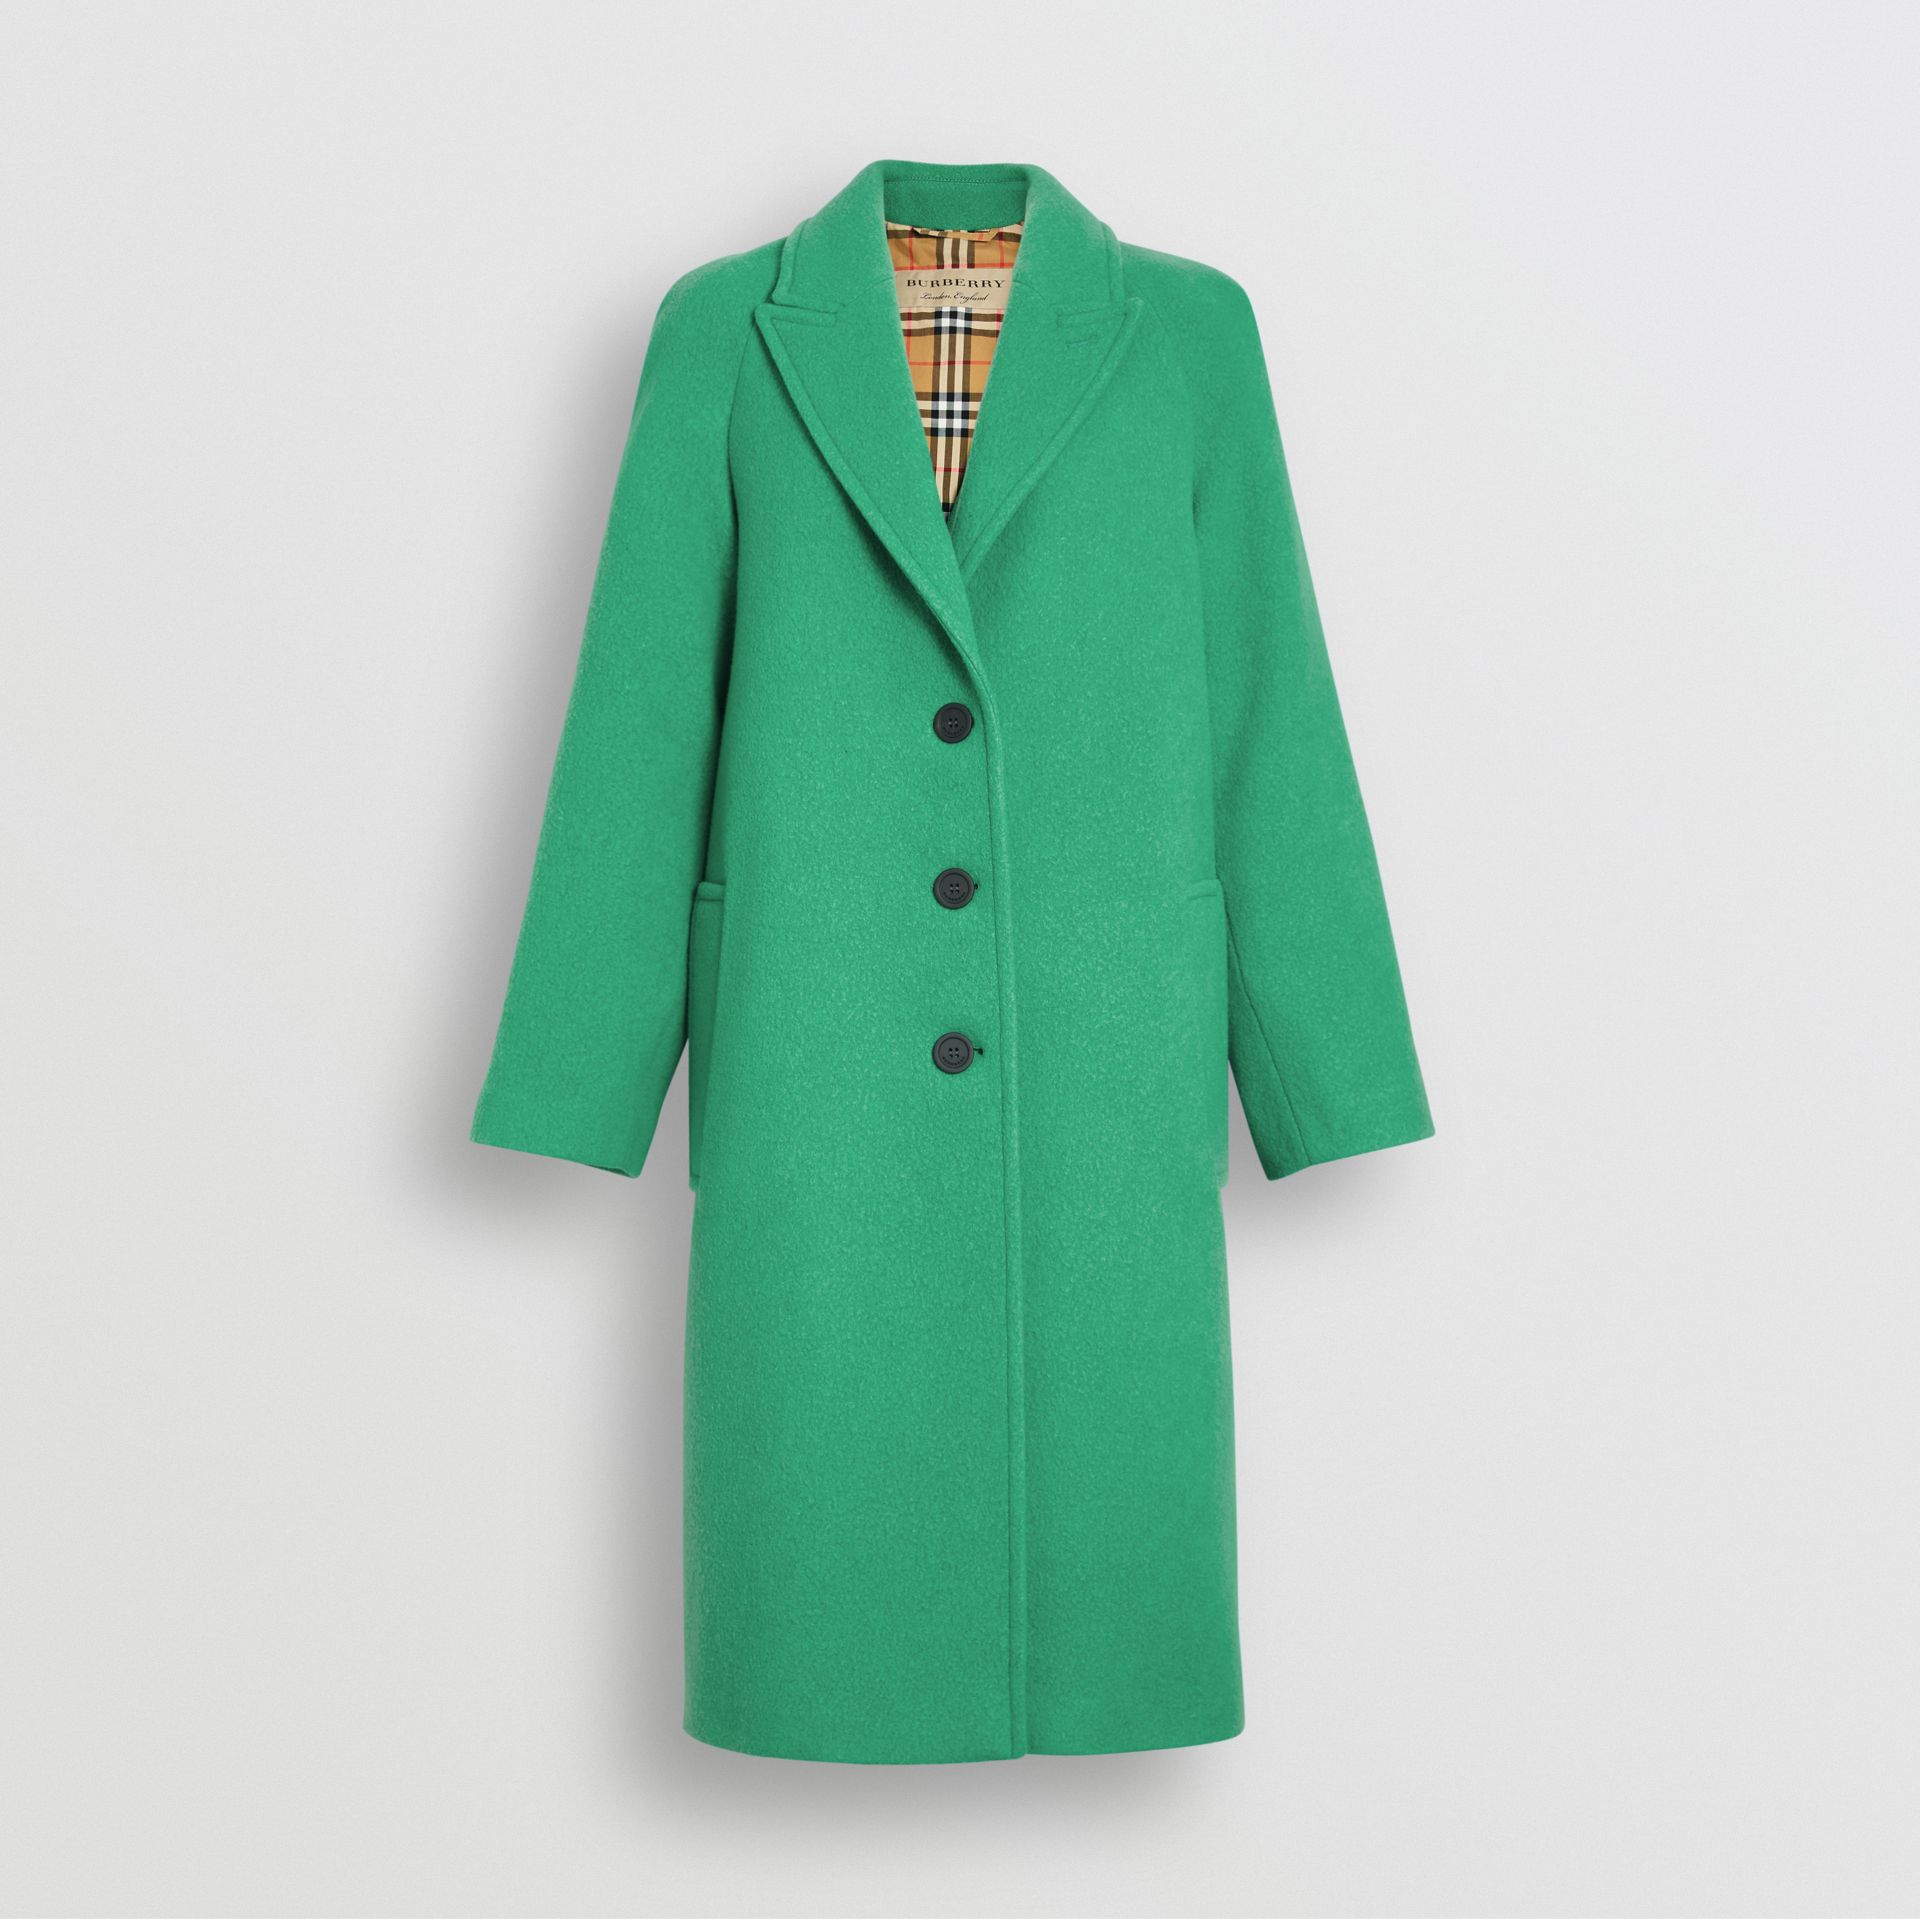 Wool Blend Tailored Coat in Bright Green - Women | Burberry Hong Kong - gallery image 3